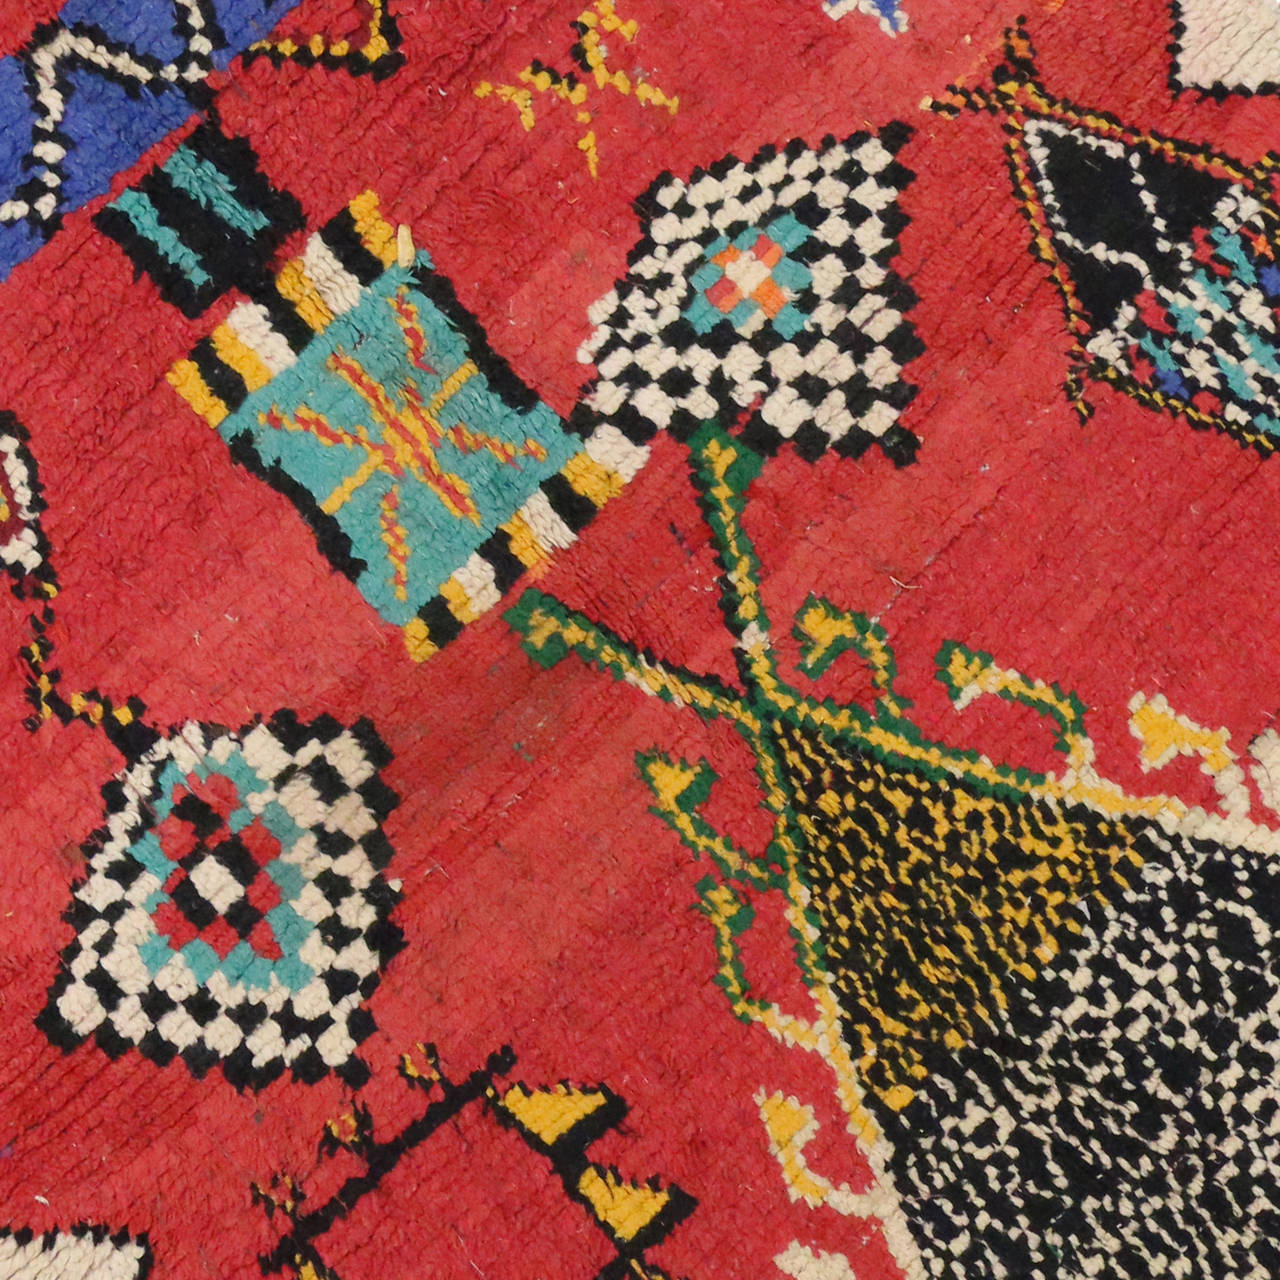 Mid Century Modern Style Red Berber Moroccan Rug With: Mid-Century Modern Berber Moroccan Red Rug With Tribal